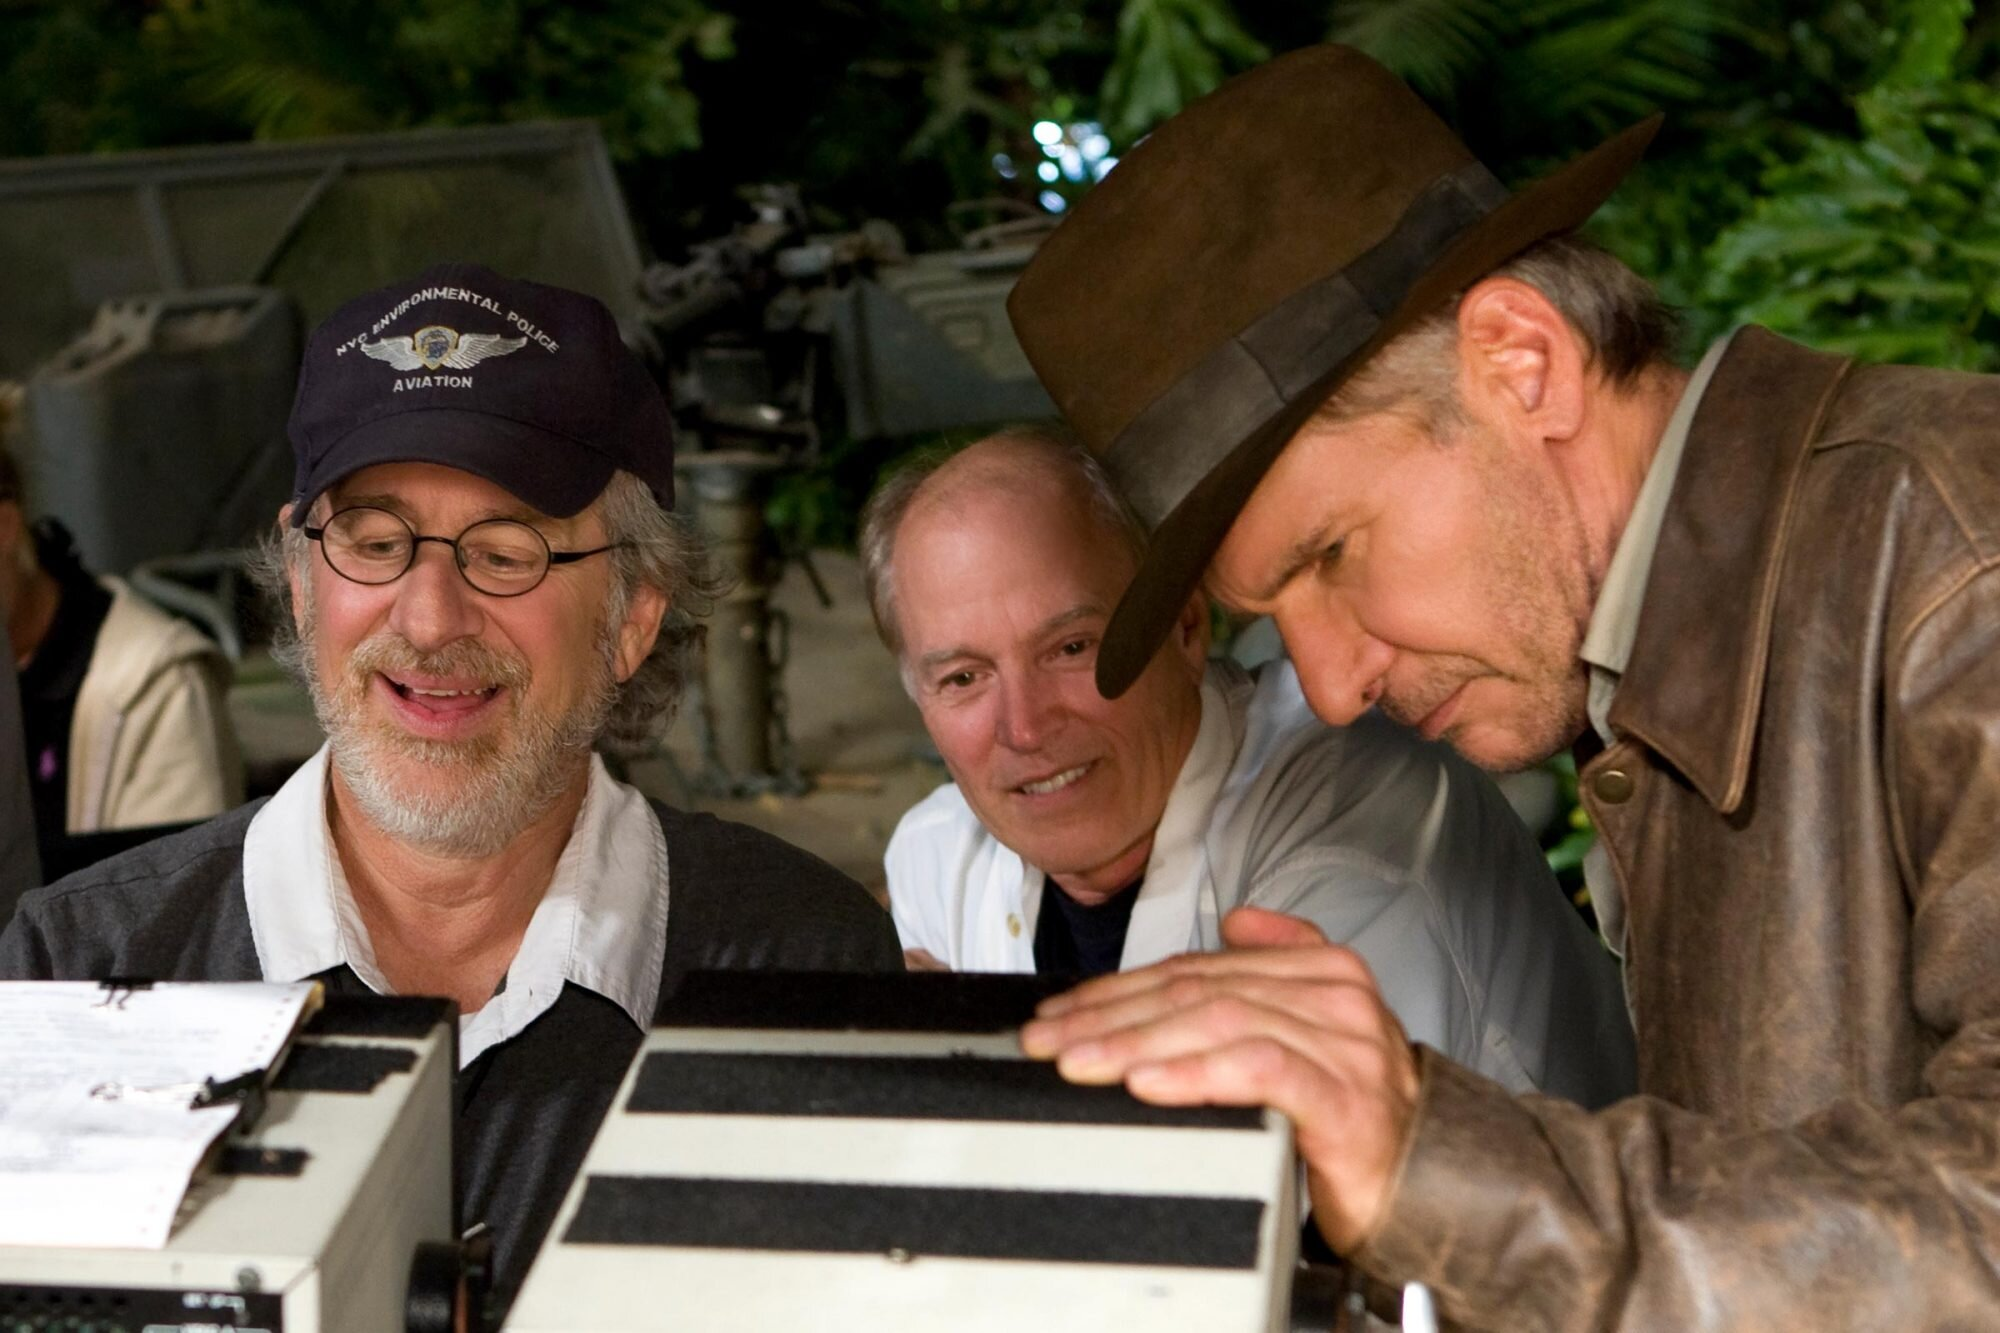 http://31.220.61.170/wp-content/uploads/2020/04/will-it-still-be-worth-the-hype-after-Spielberg-left.jpg&q=85.jpeg